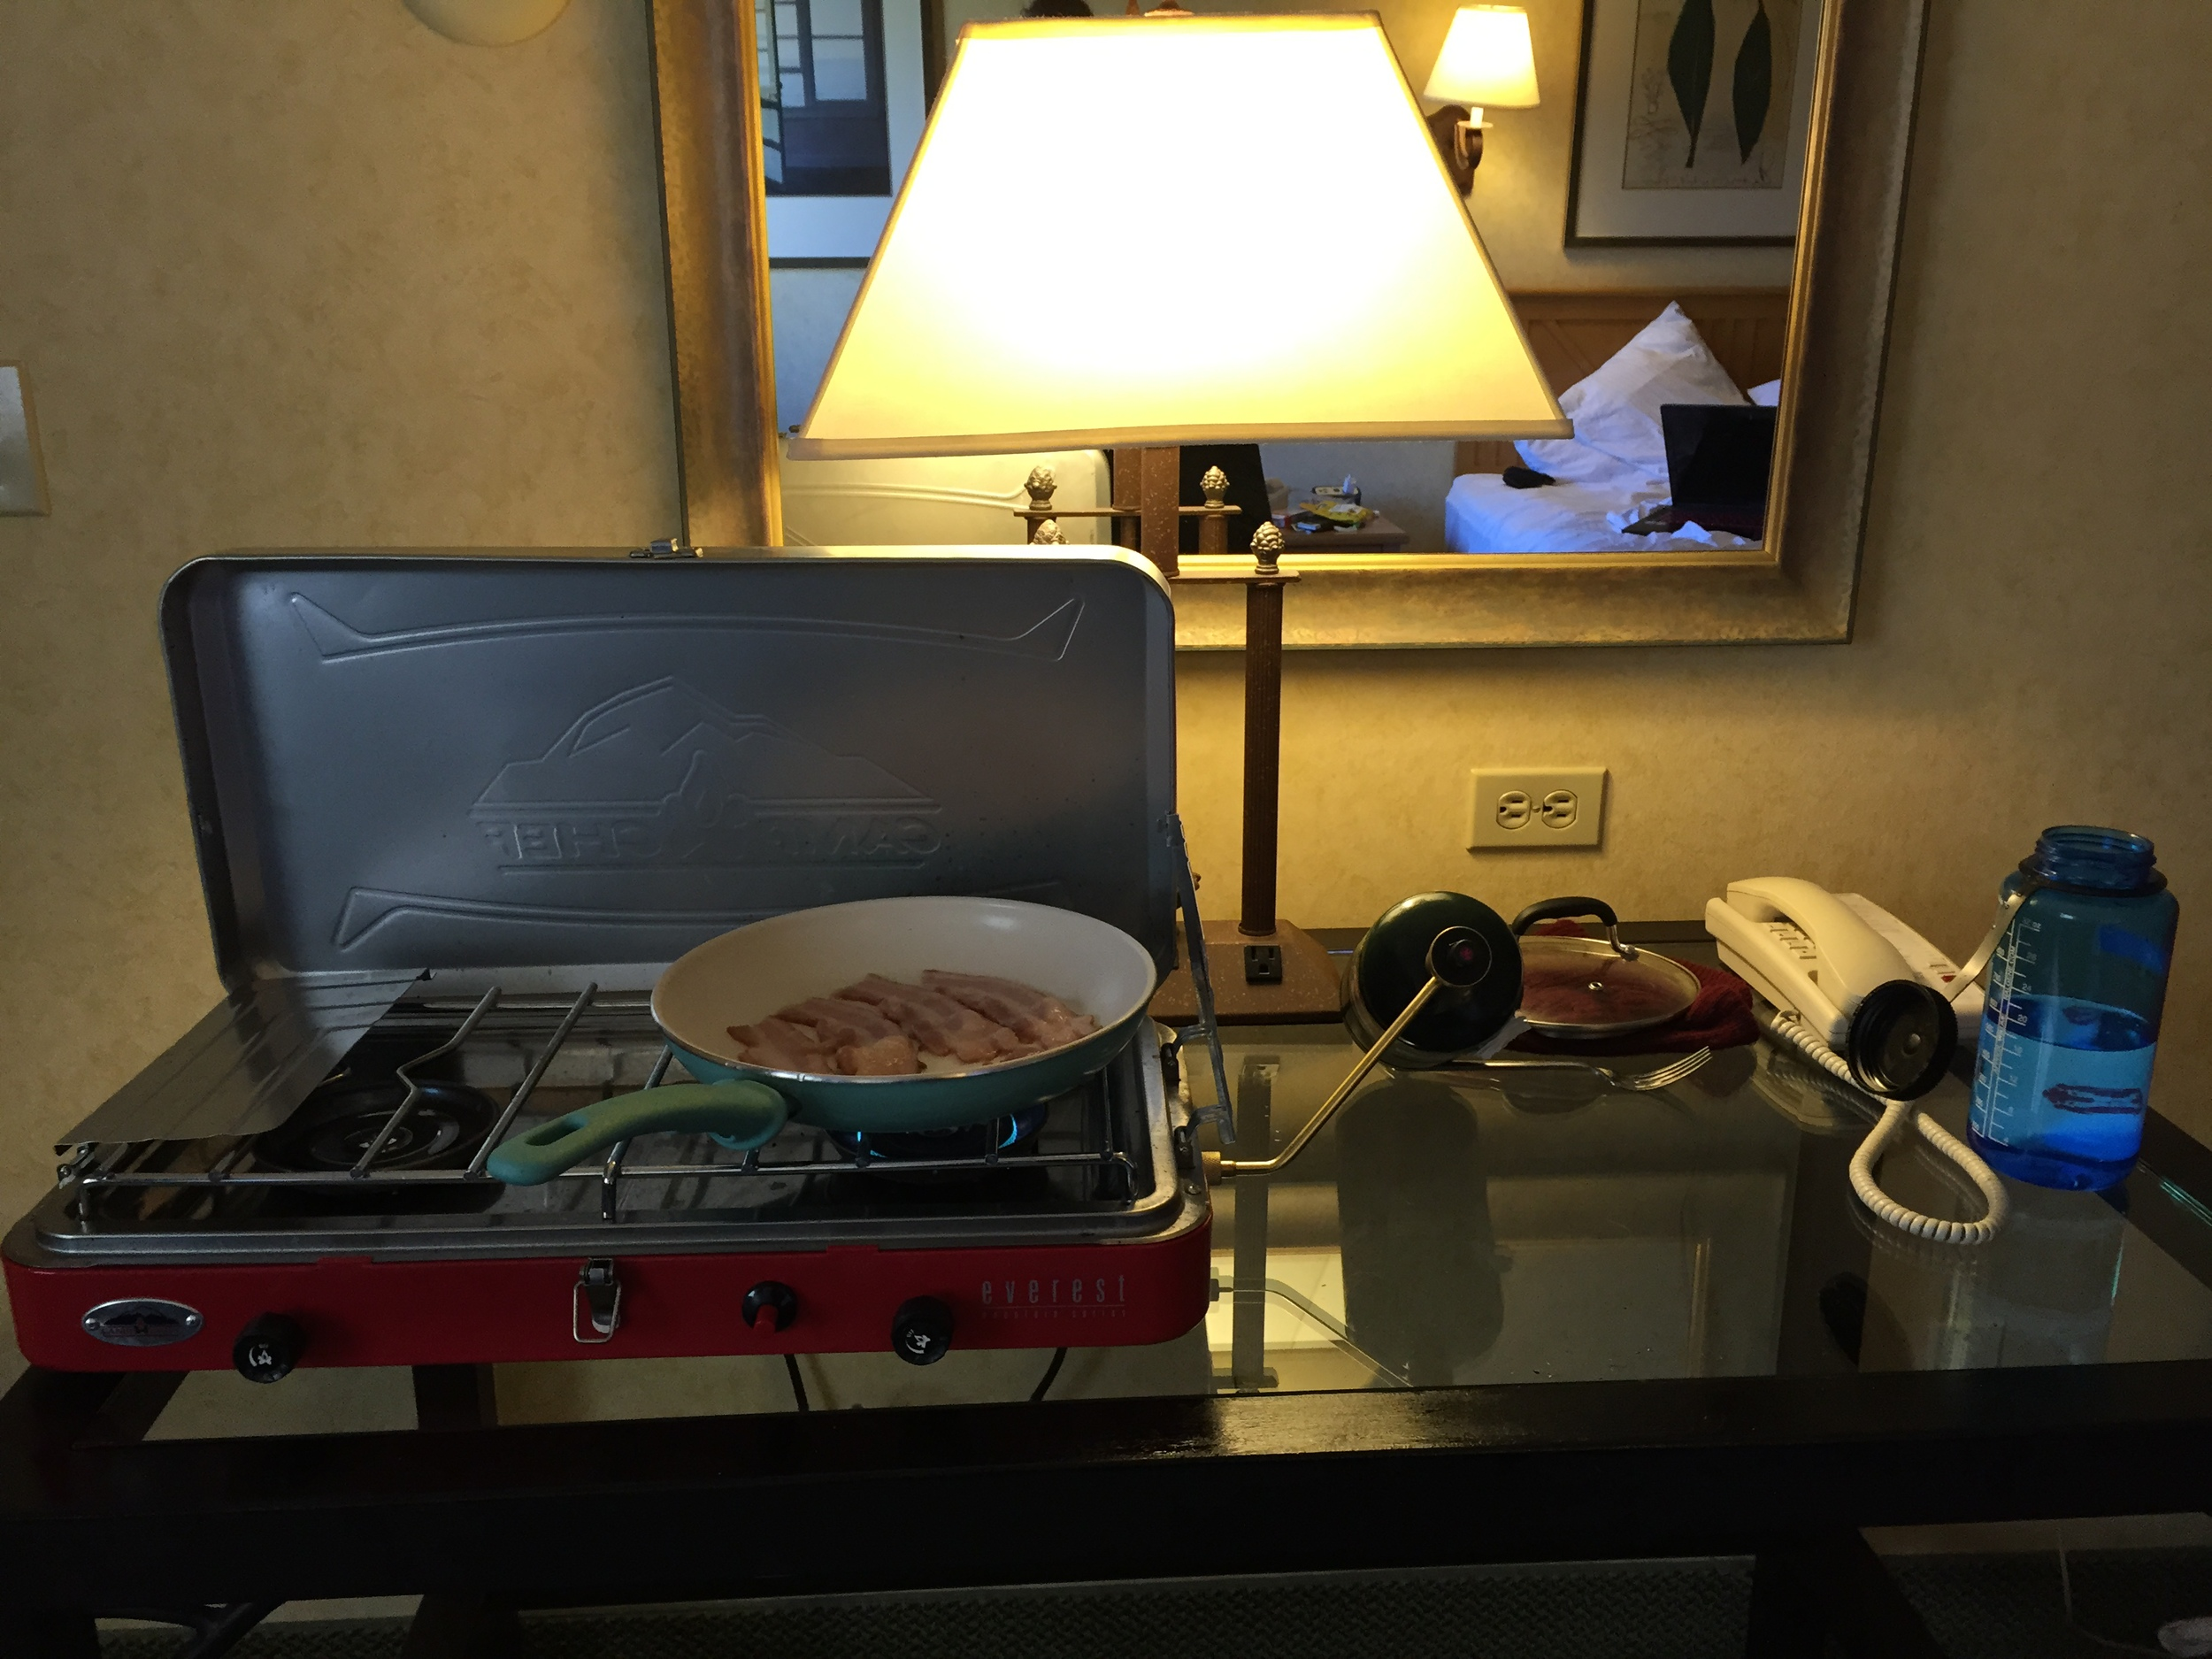 Budget life in a hotel sometimes looks like this.